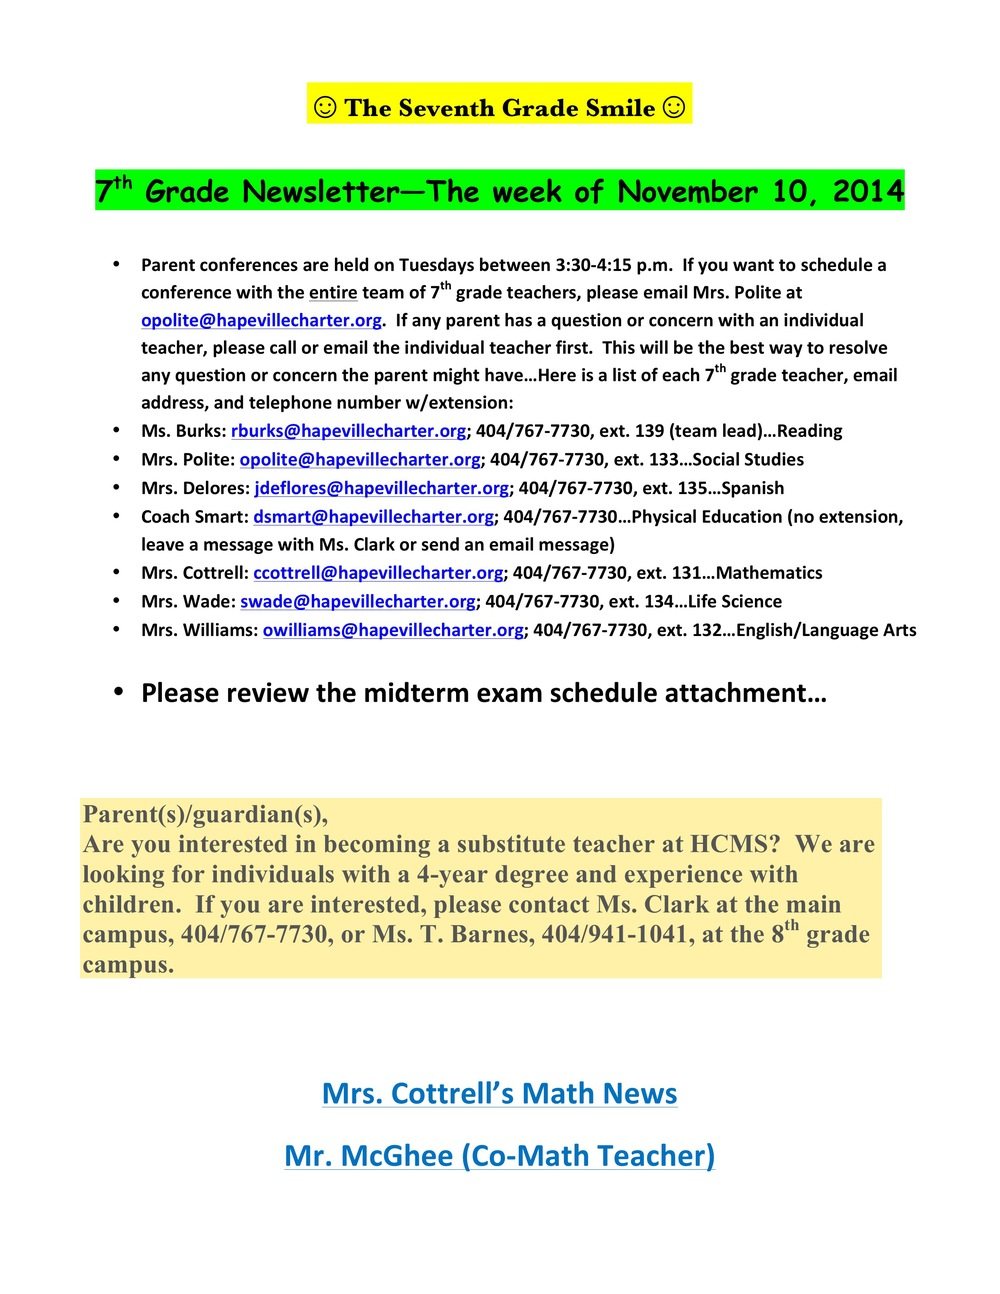 Newsletter Image7th grade nov 10-14.jpeg